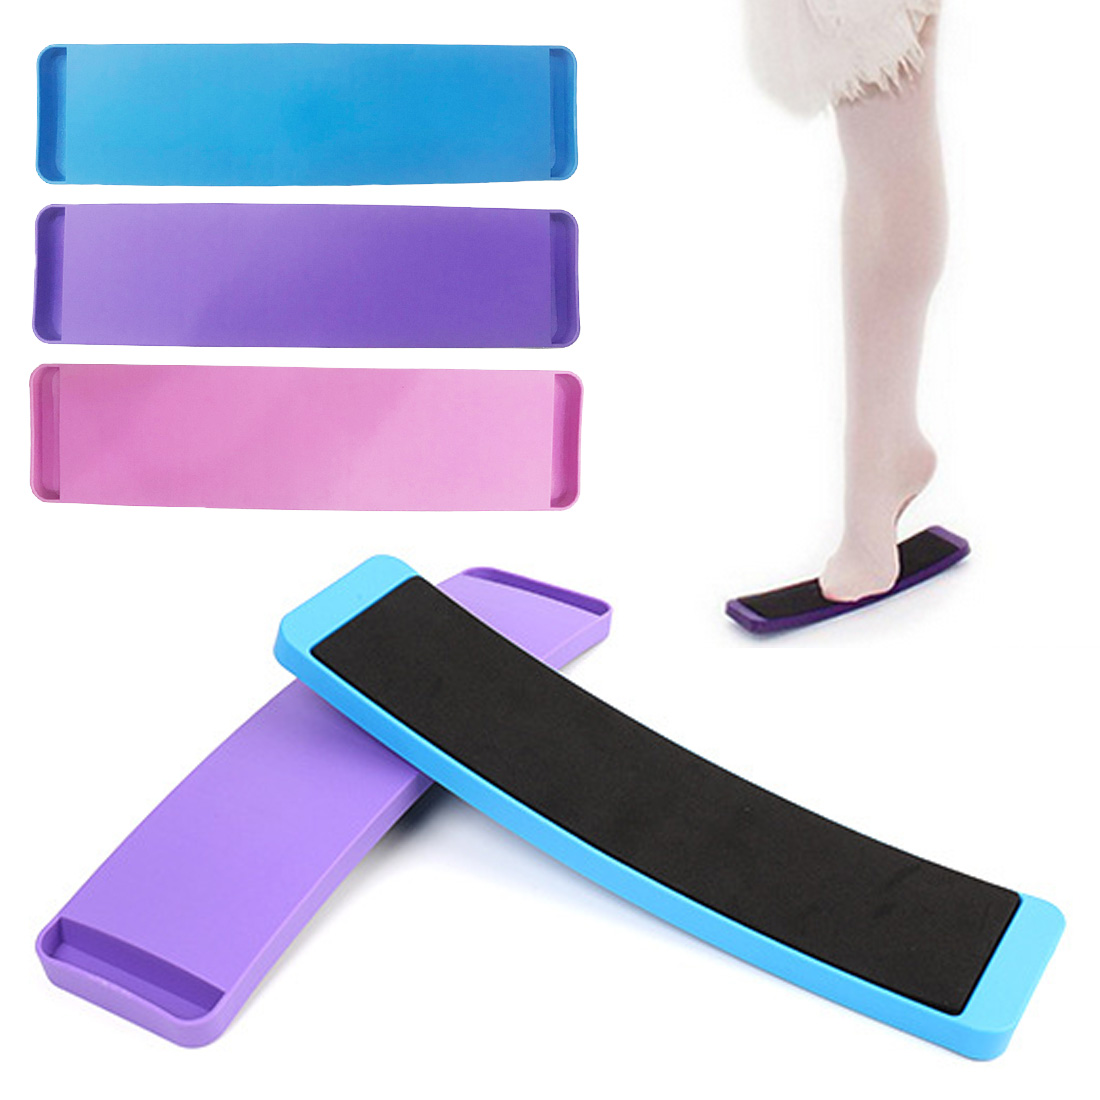 Ballet Turnboard Board Dance Turn Pirouette Spinning Training Tools Practice New